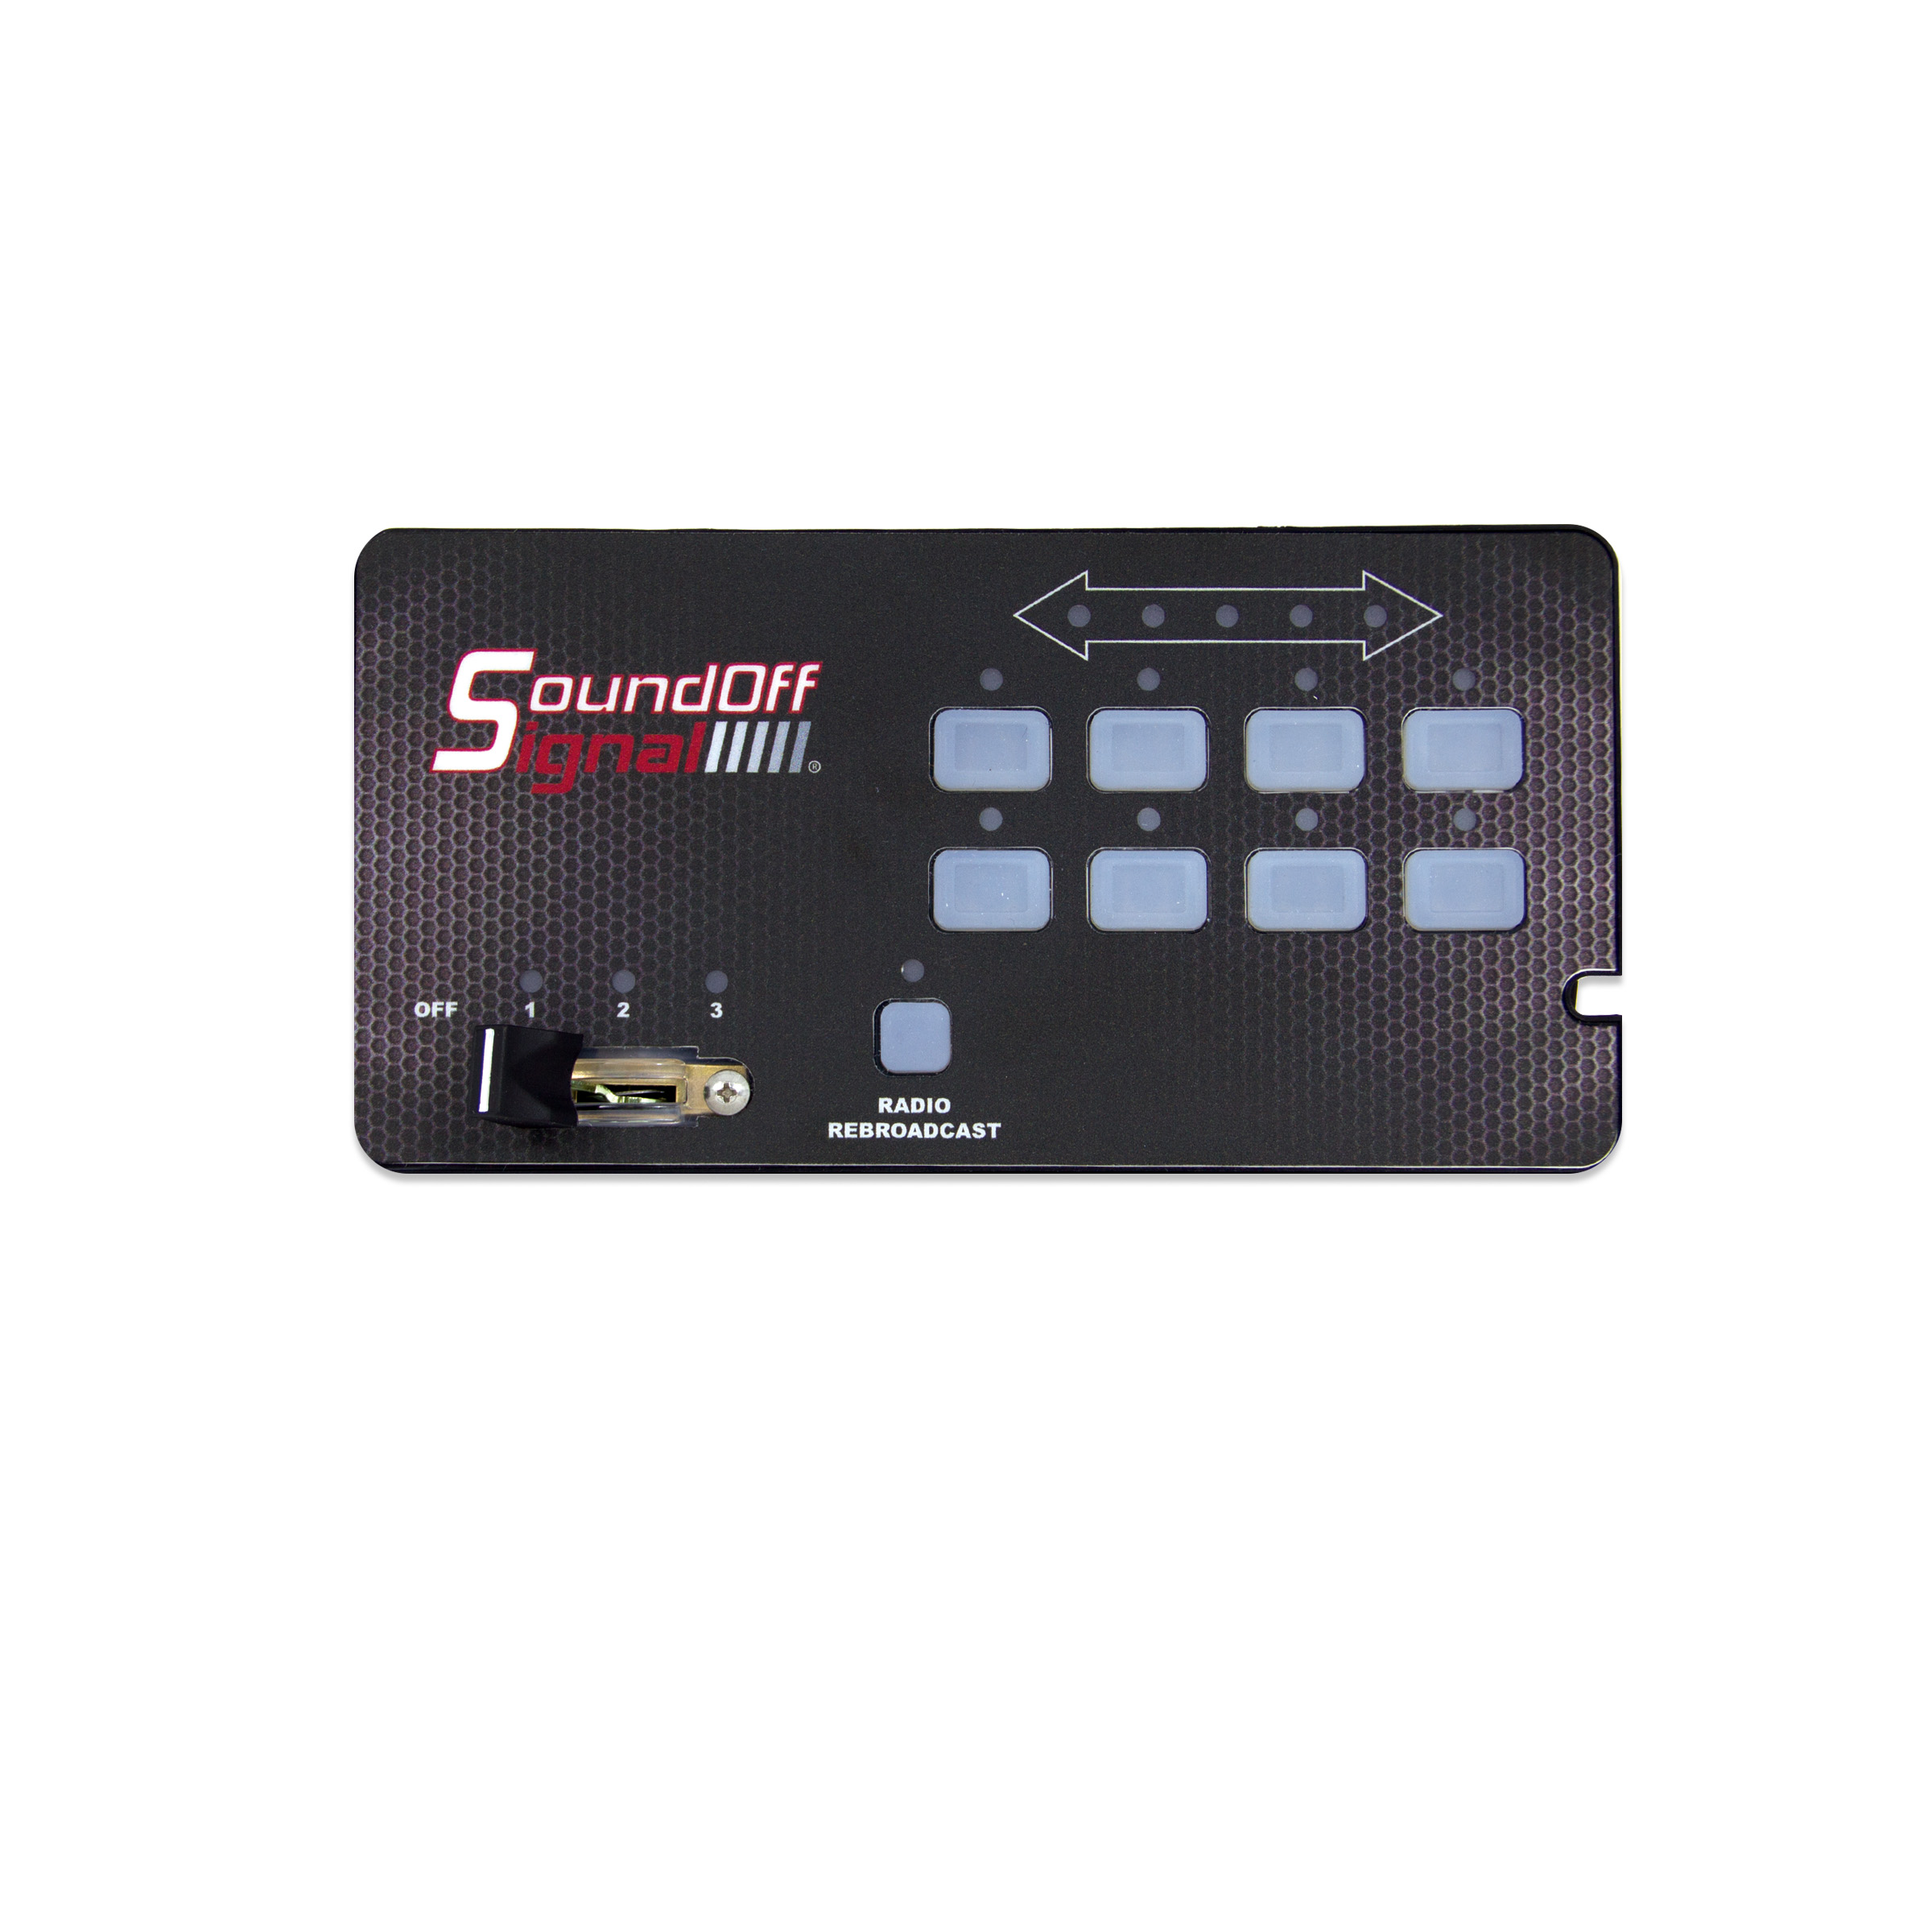 SoundOff 8 Button Controller Product Image